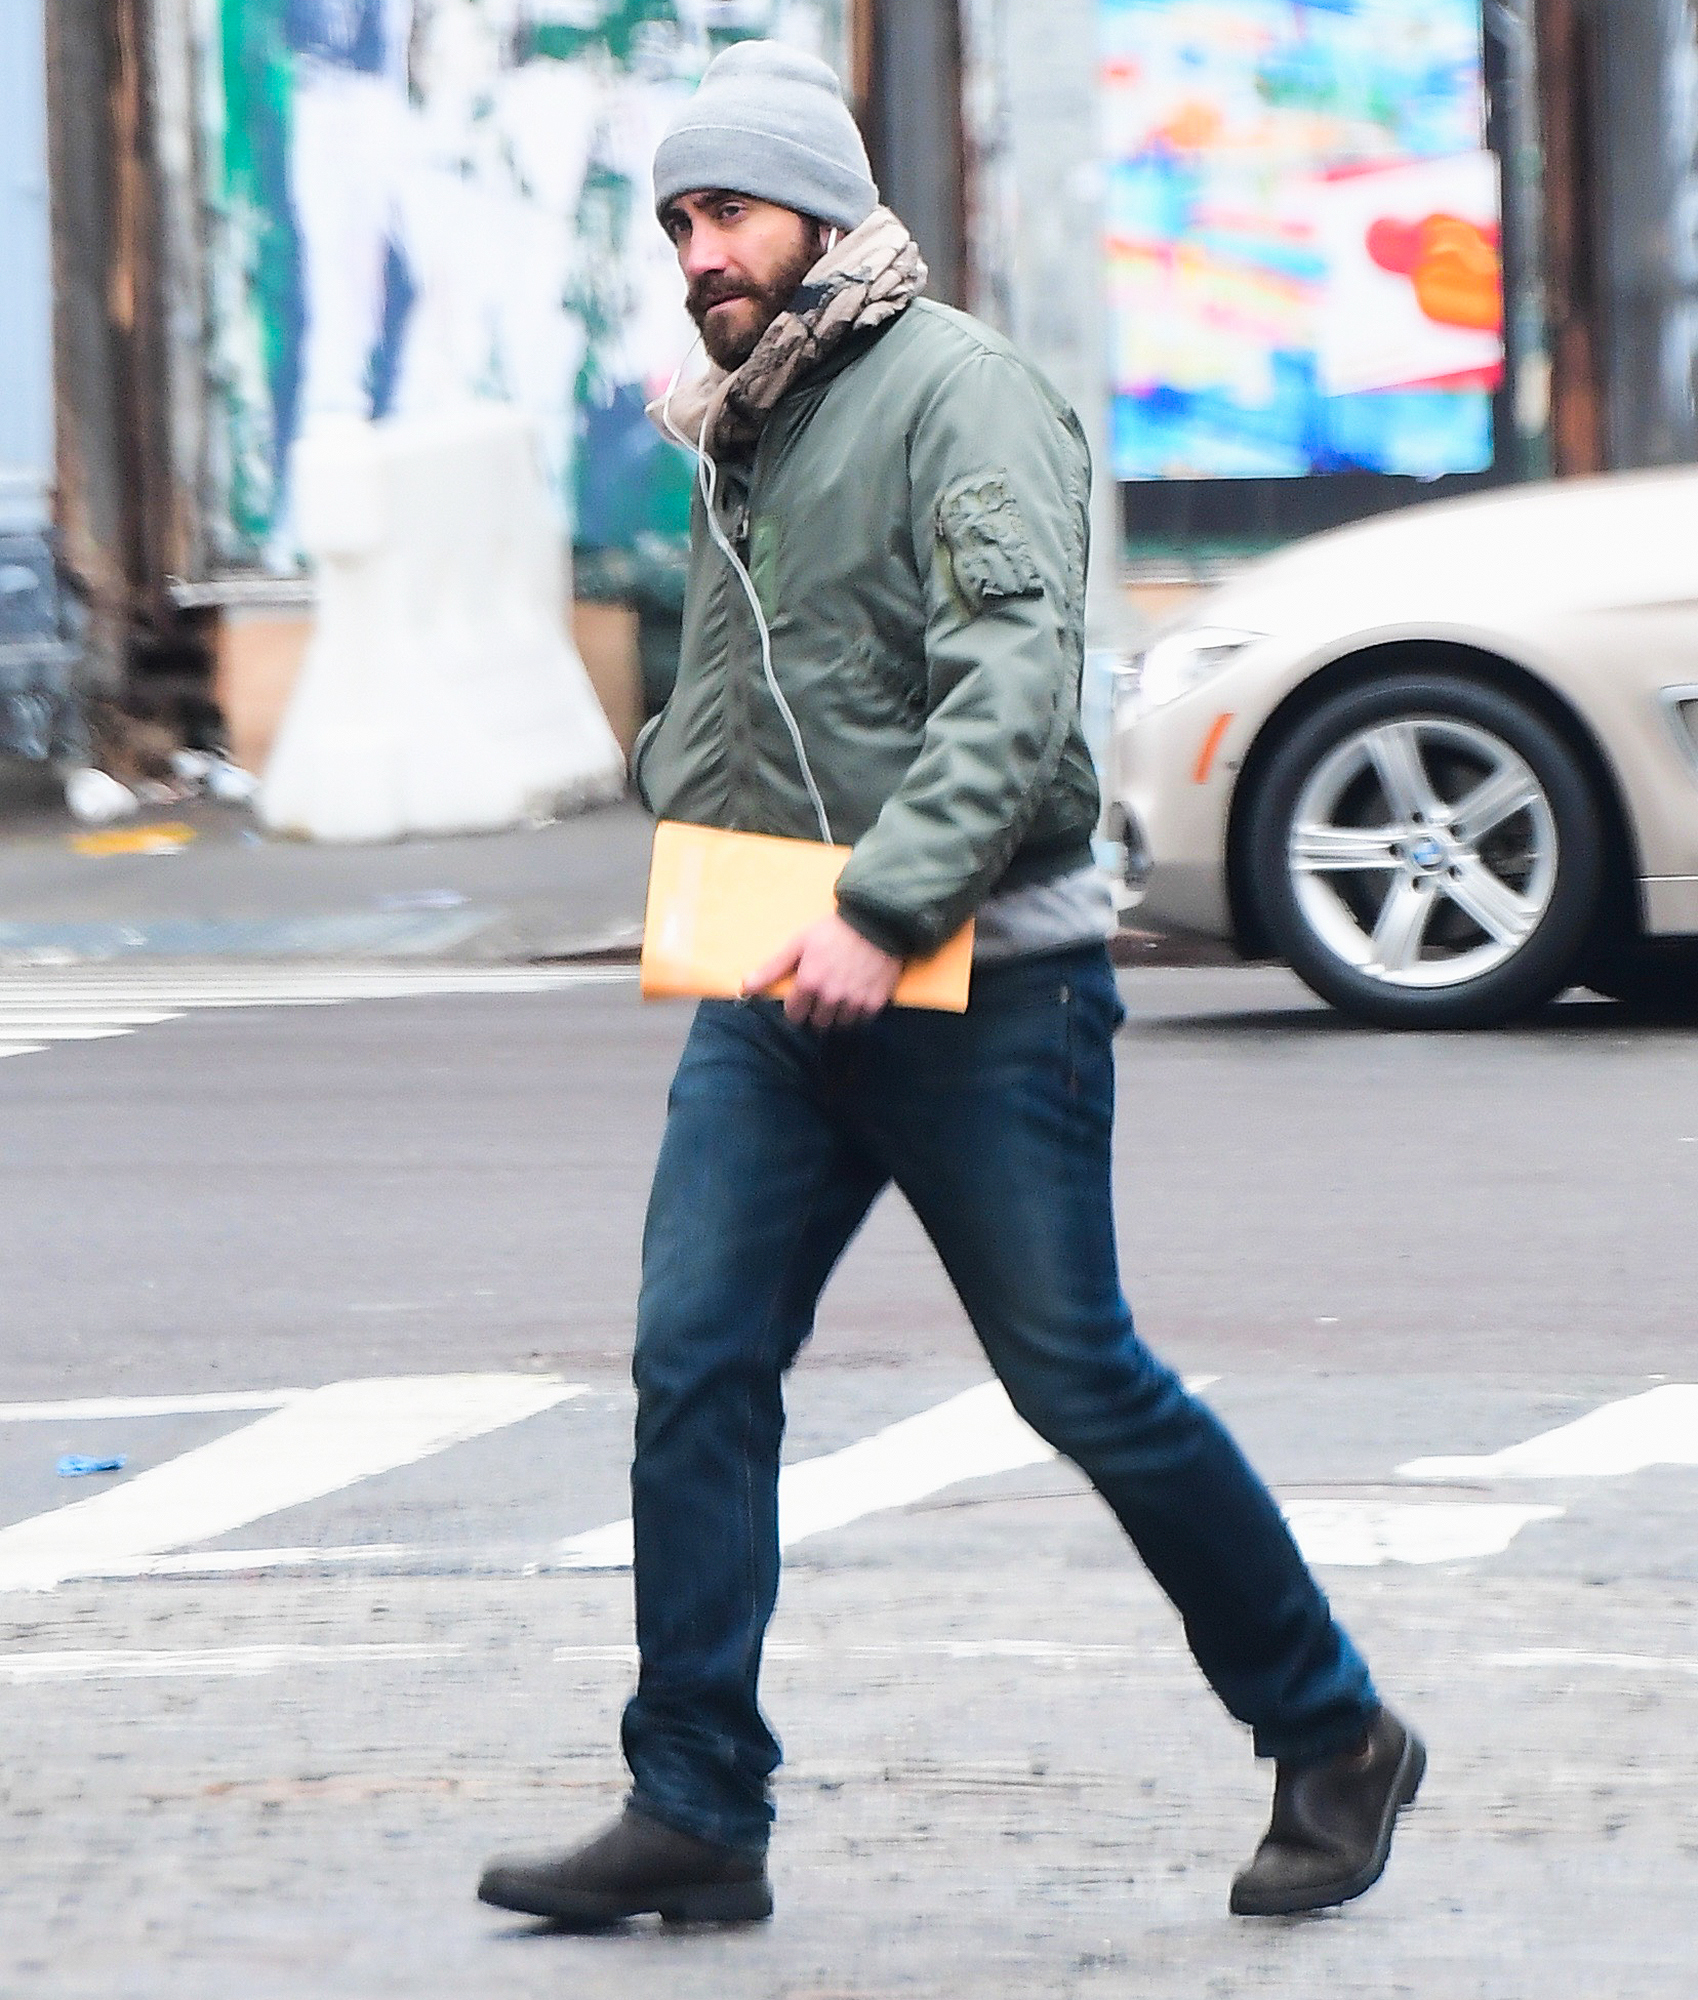 EXCLUSIVE: Jake Gyllenhaal Listens To Music while Strolling in NYC